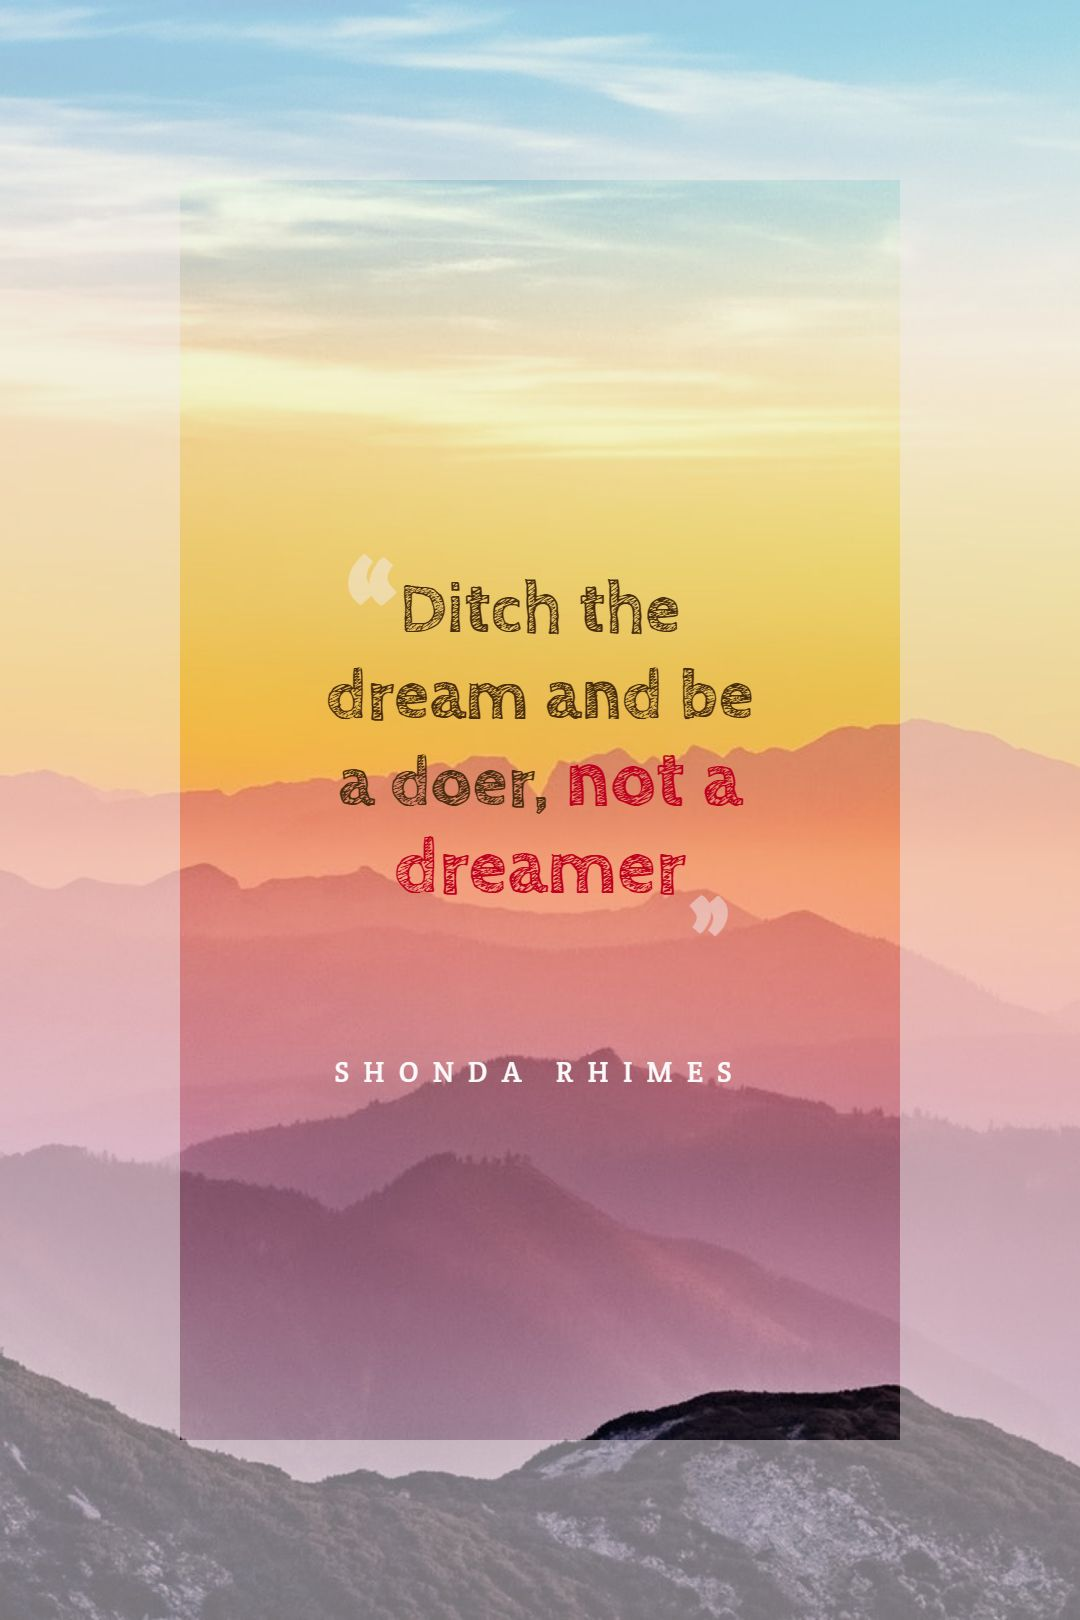 Quotes image of Ditch the dream and be a doer, not a dreamer